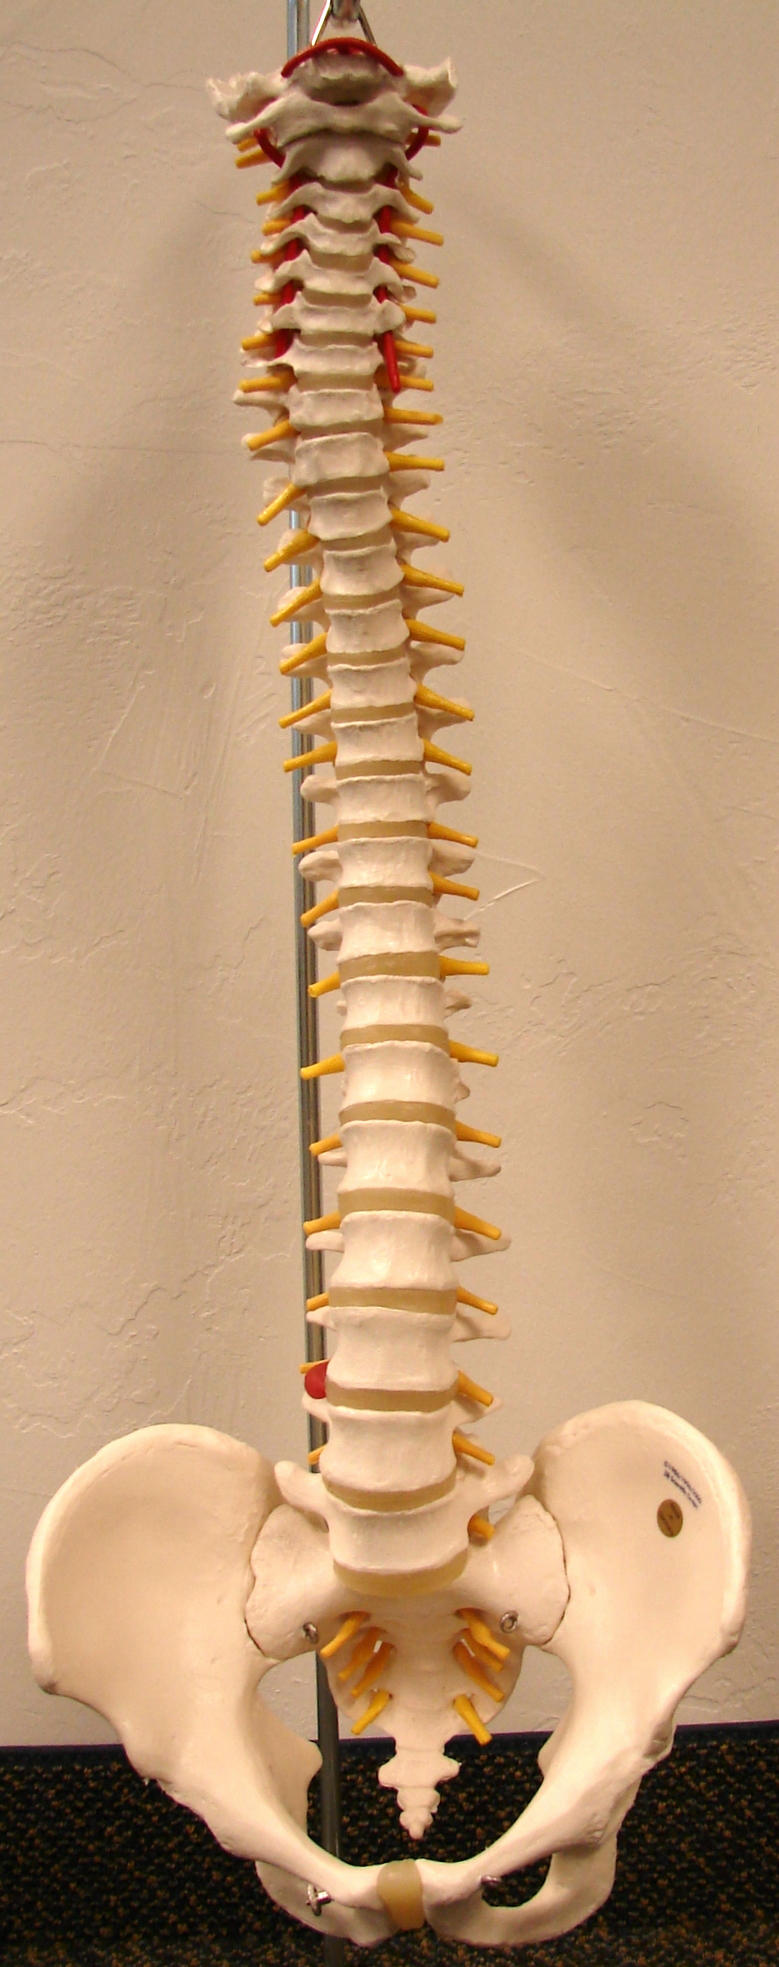 Spinal Column Front View by FantasyStock